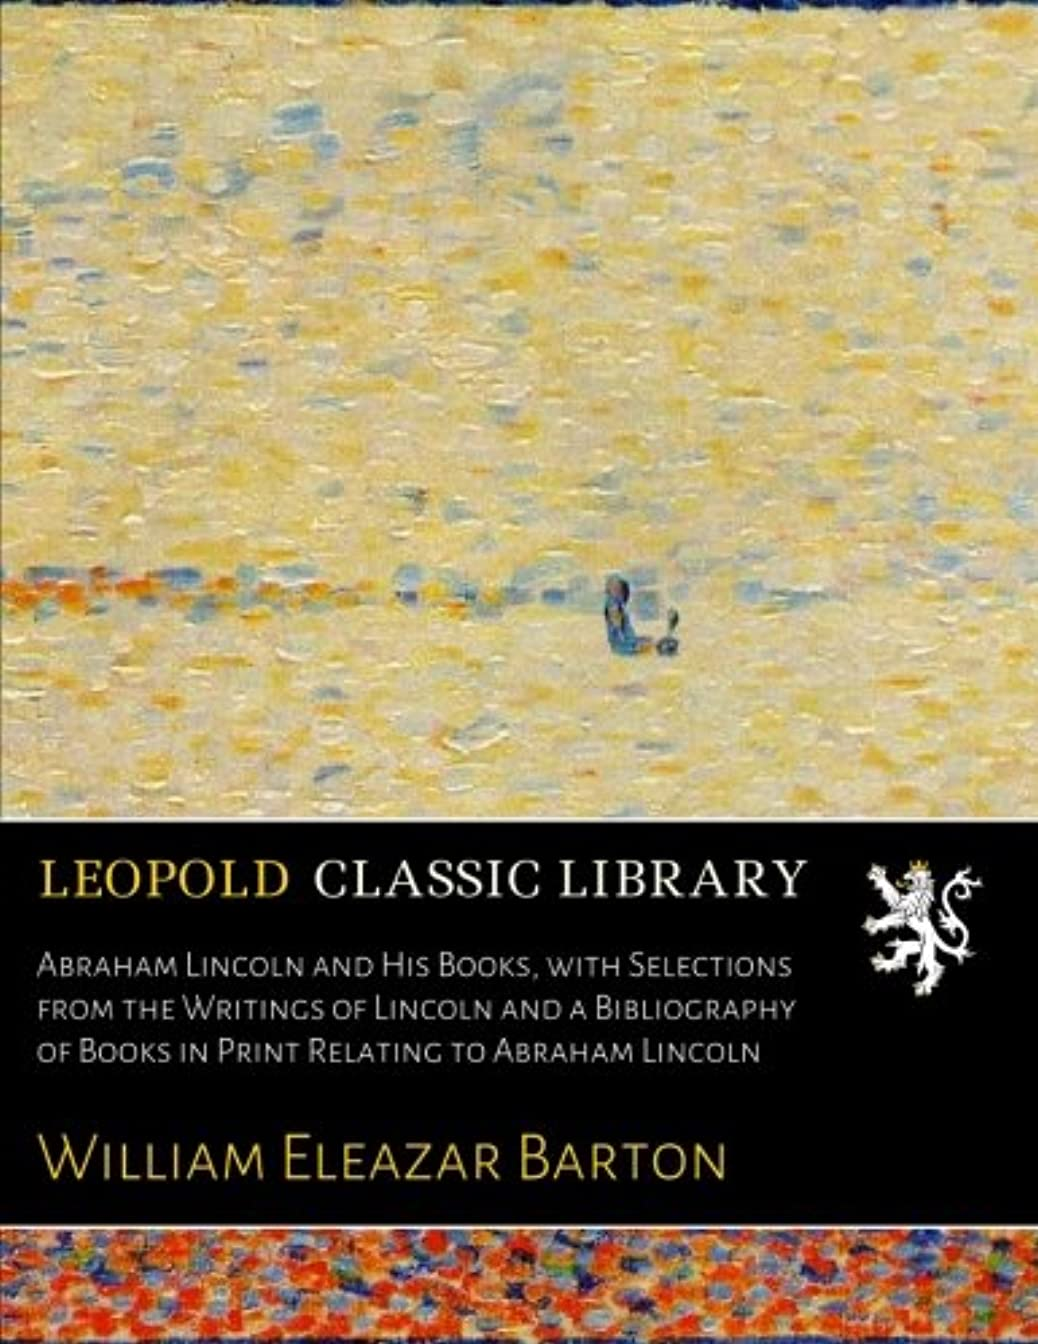 Abraham Lincoln and His Books, with Selections from the Writings of Lincoln and a Bibliography of Books in Print Relating to Abraham Lincoln